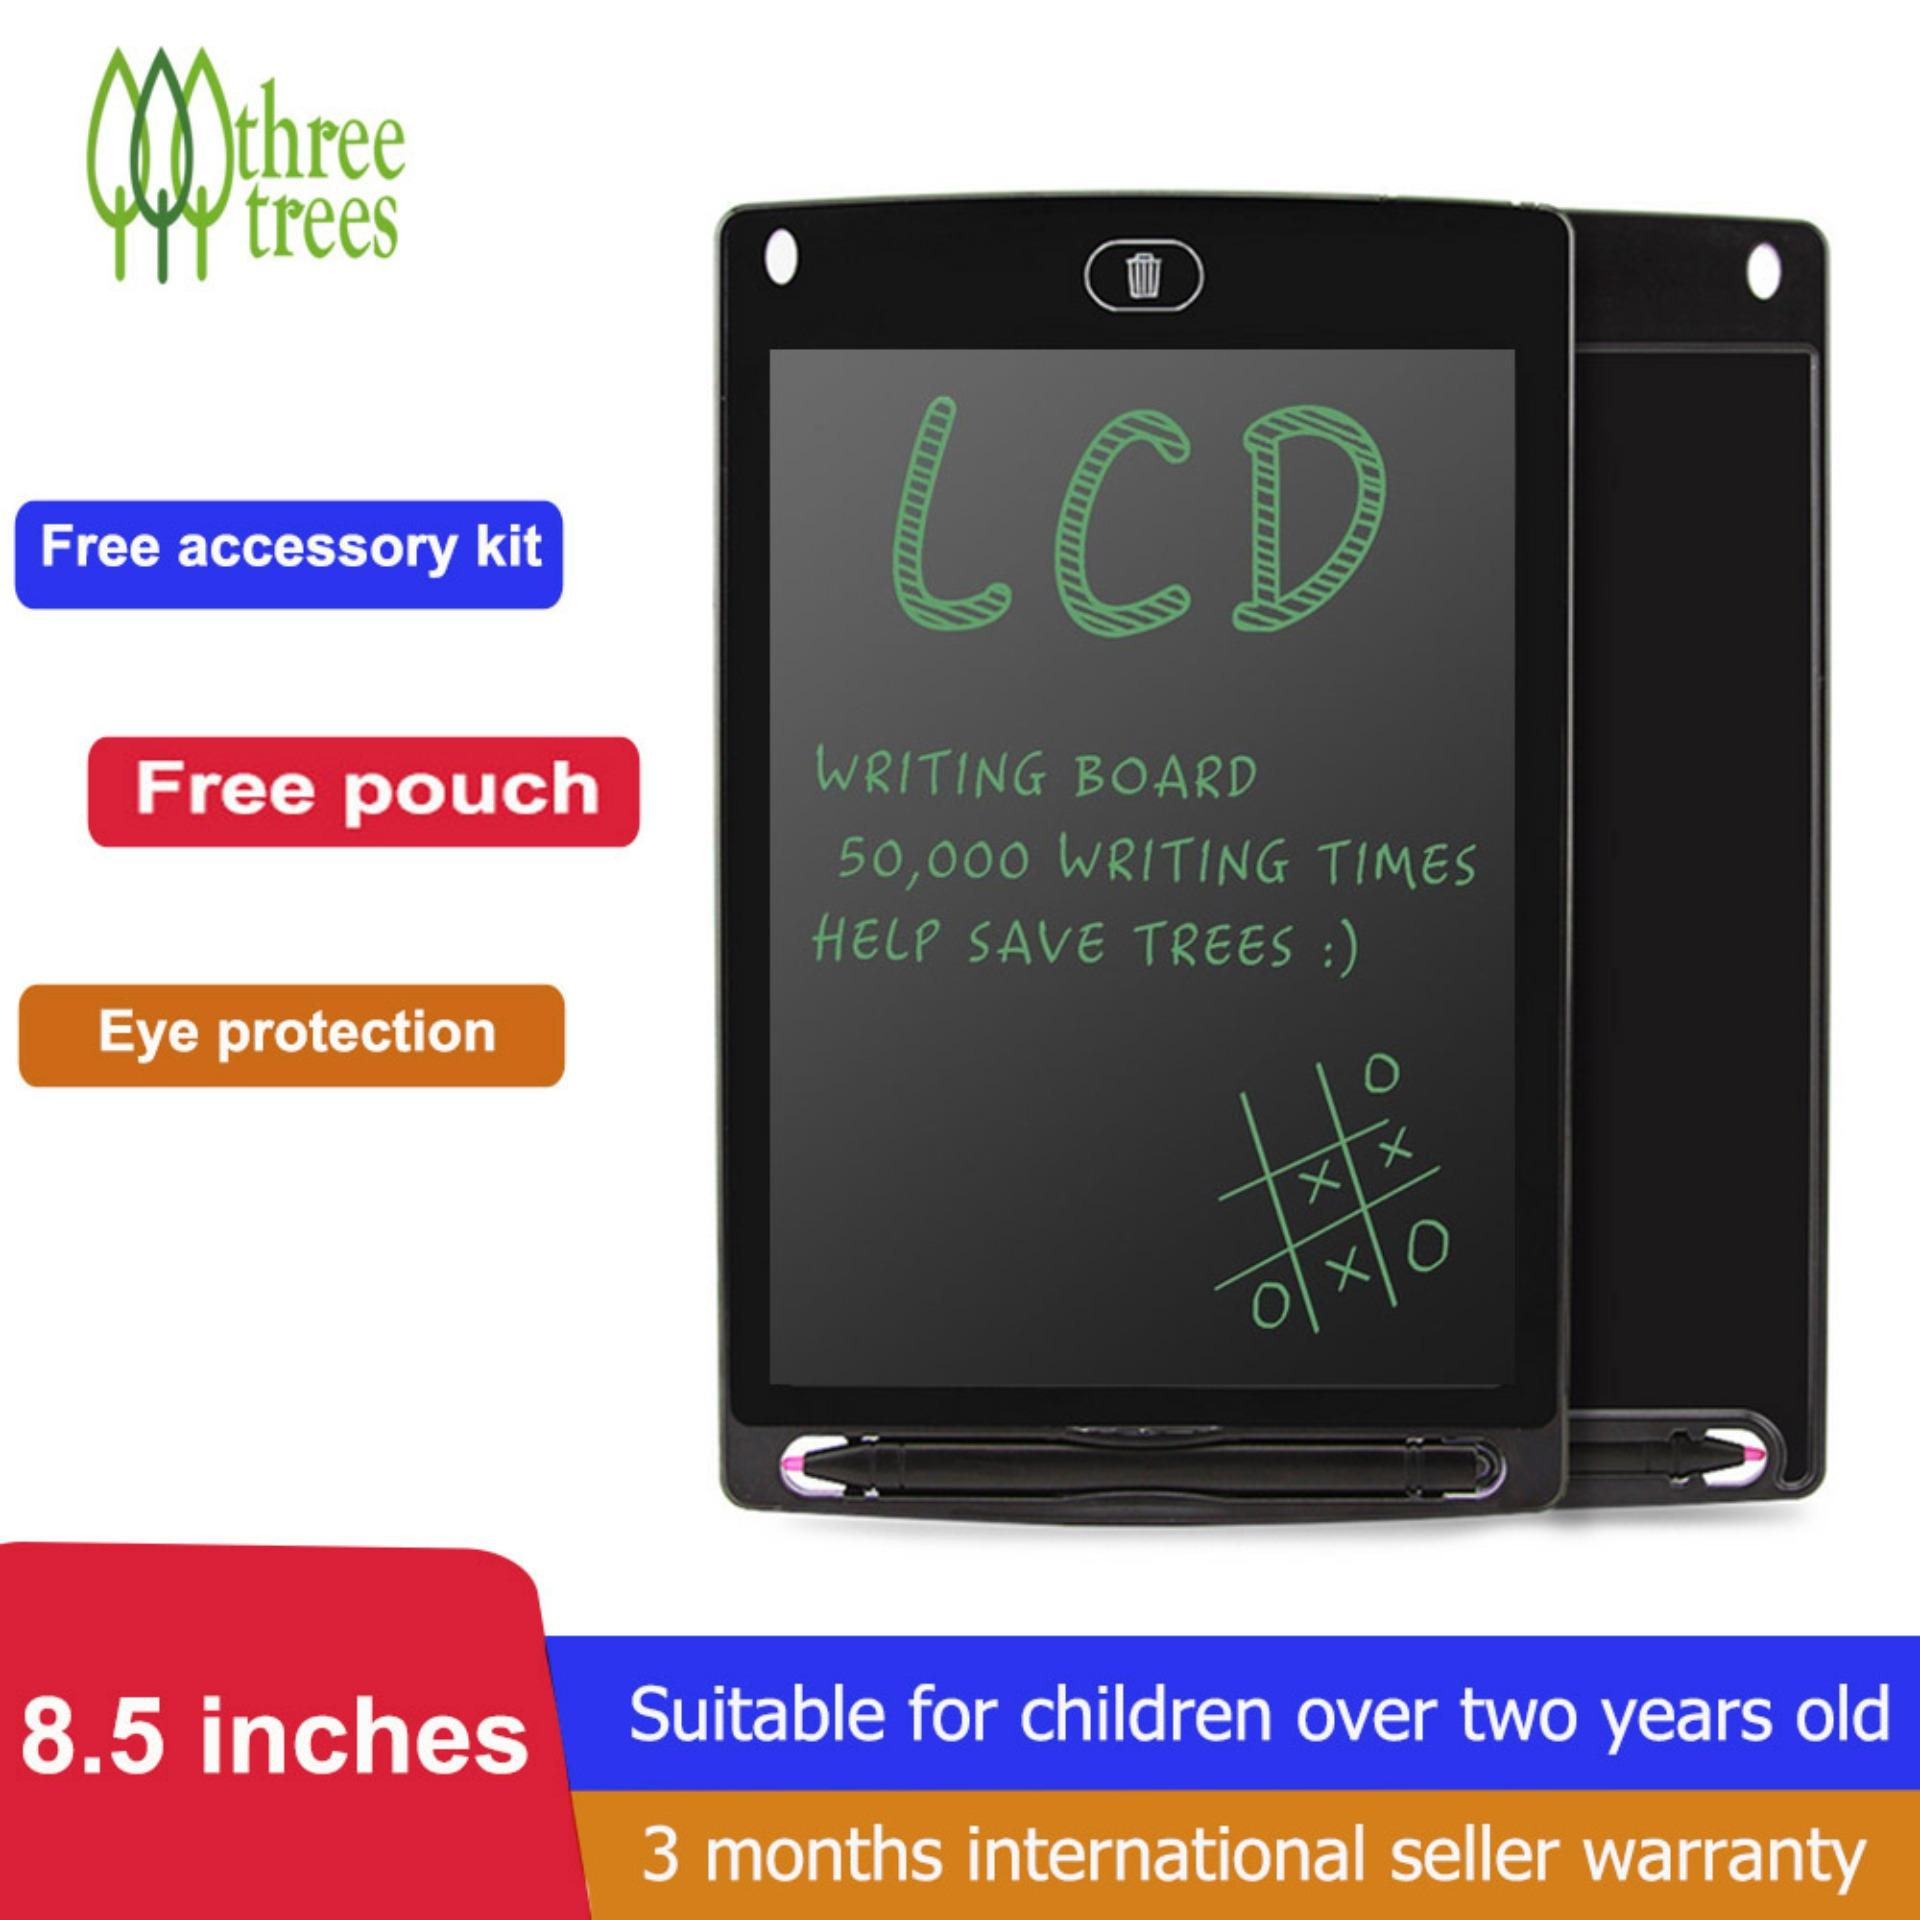 Threetrees 8.5 Inch LCD Writing Tablet With Carring Pouch And Accessory Kit,Digtal Graphic Drawing board,Drawing and Writing Board For Kids and Aduts